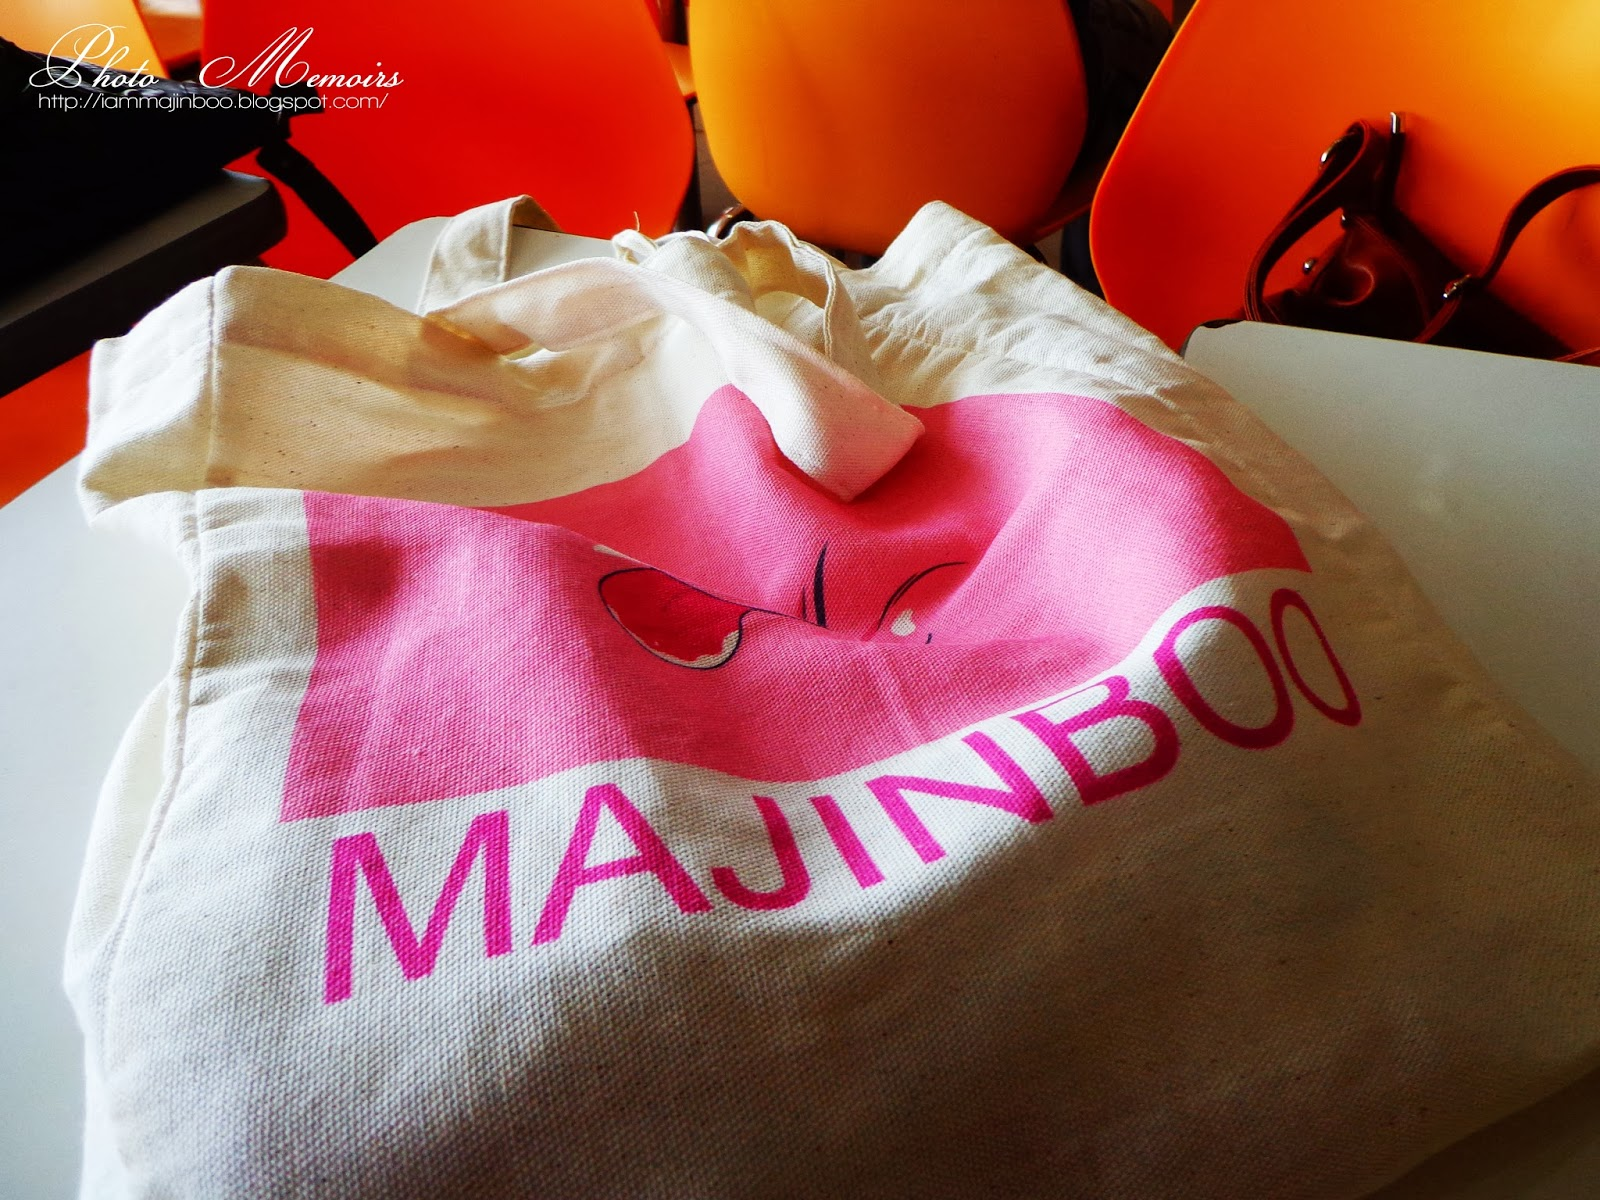 Majinboo Tote Bag from Gush Shop